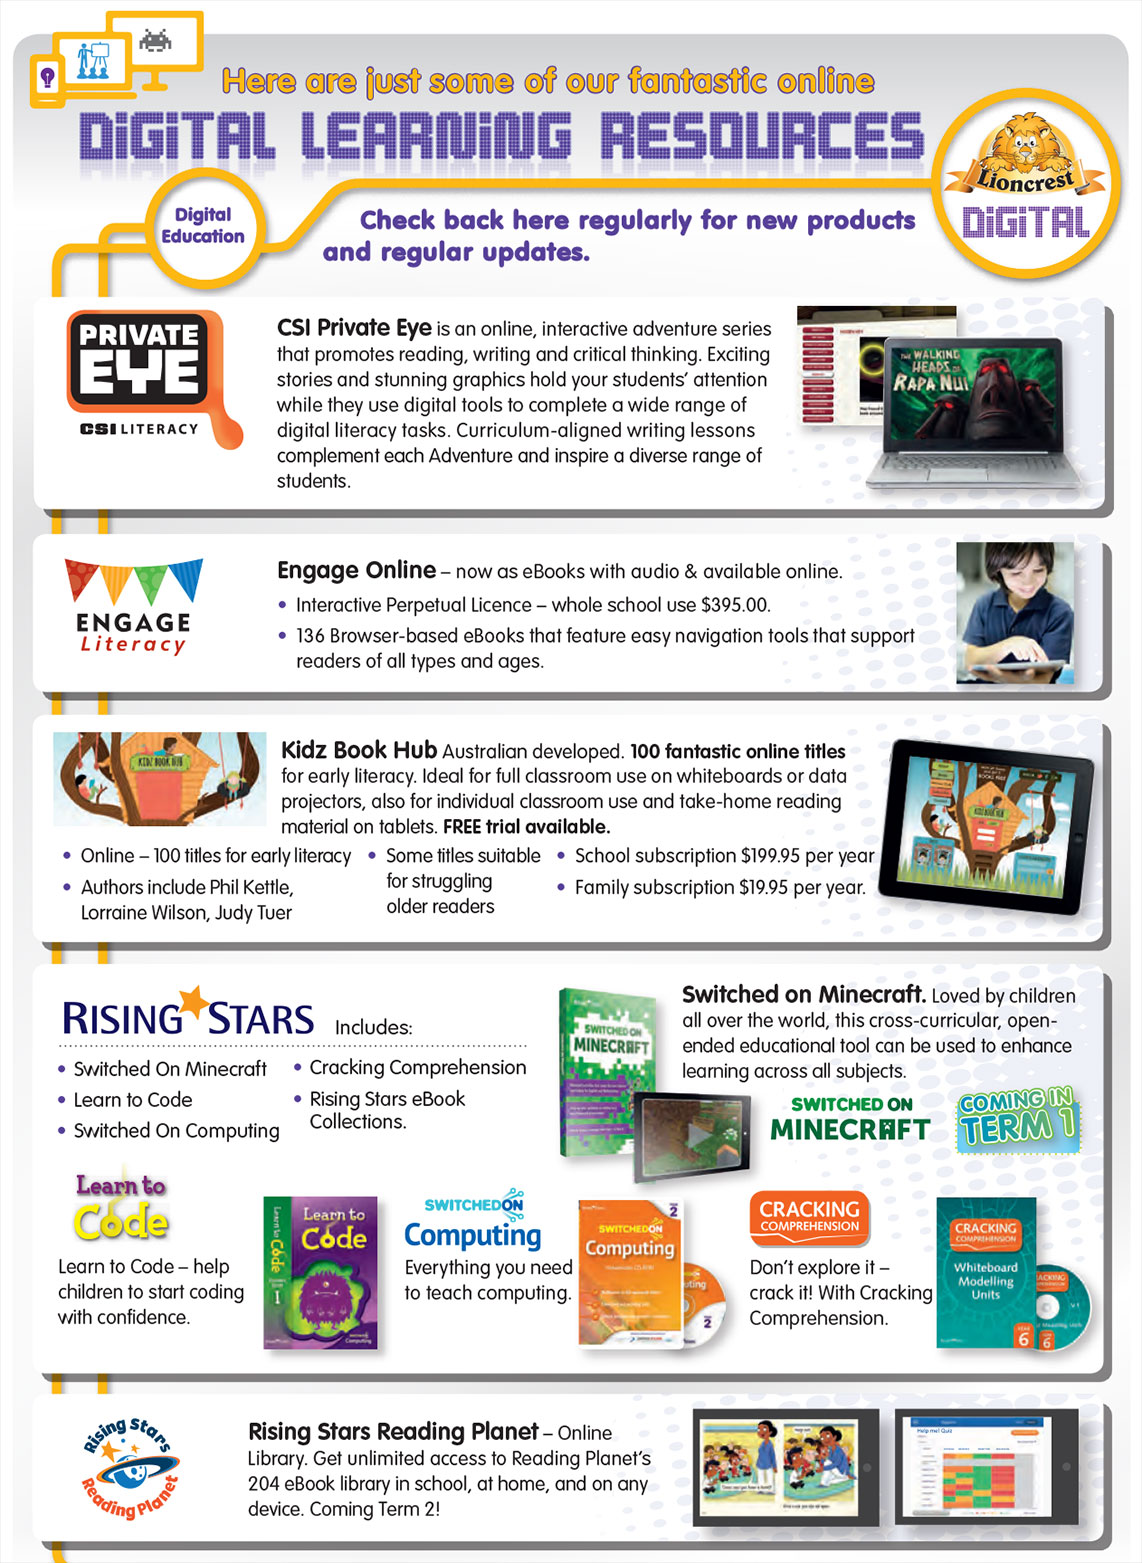 lioncrest-digital-main Digital Learning Resources and Materials Online | Lioncrest Education